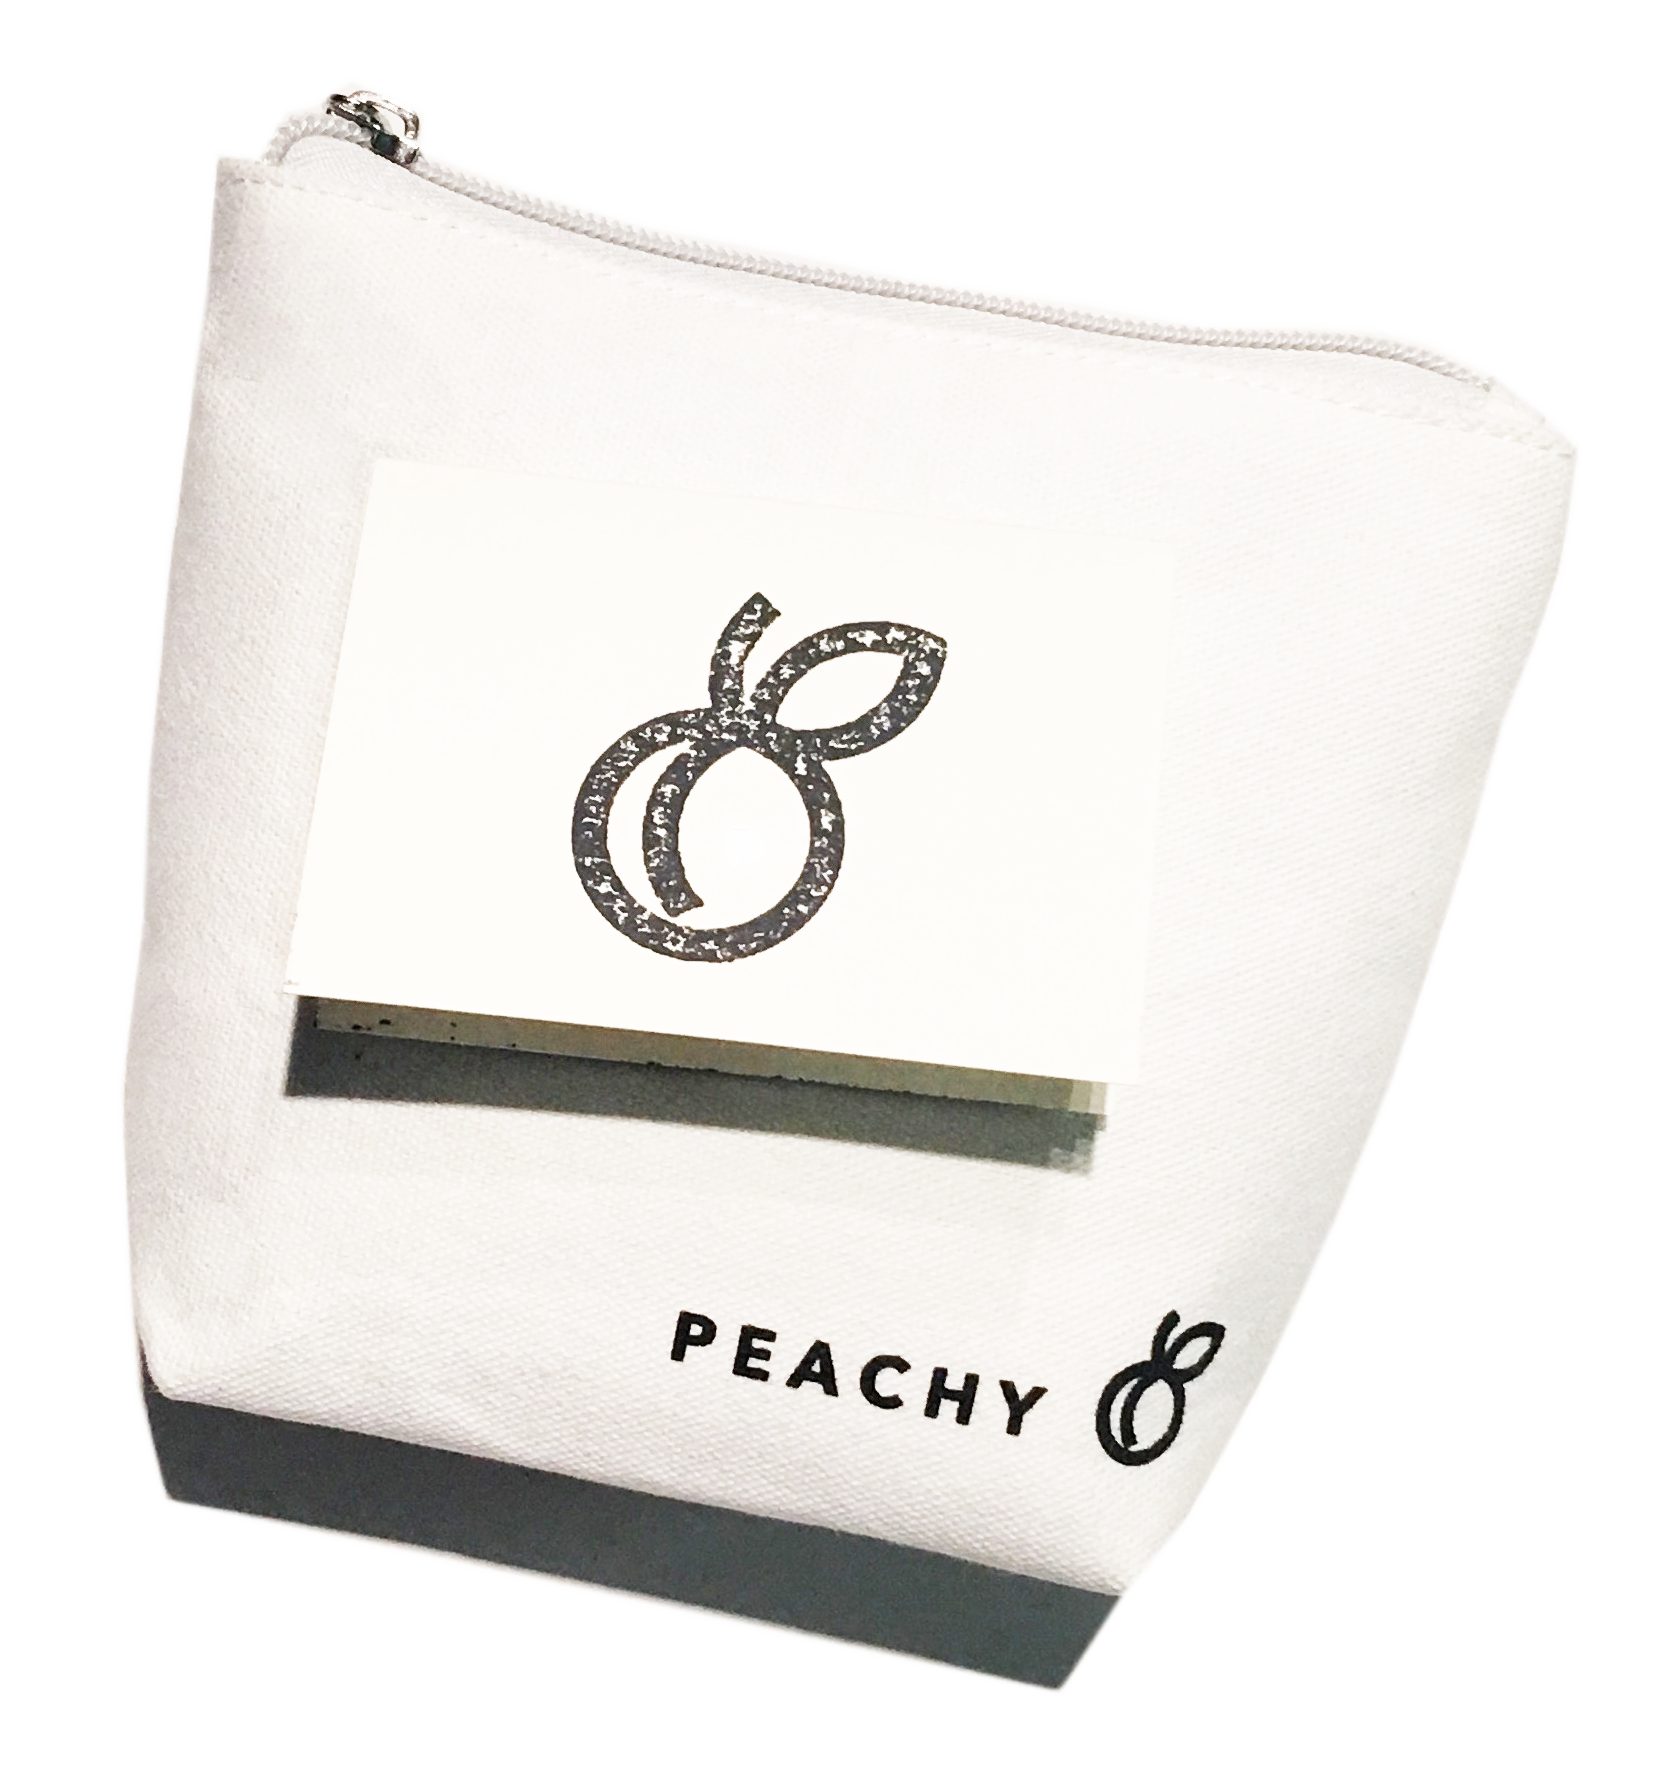 SHOP - the Peachy store for the latest and greatest calming products